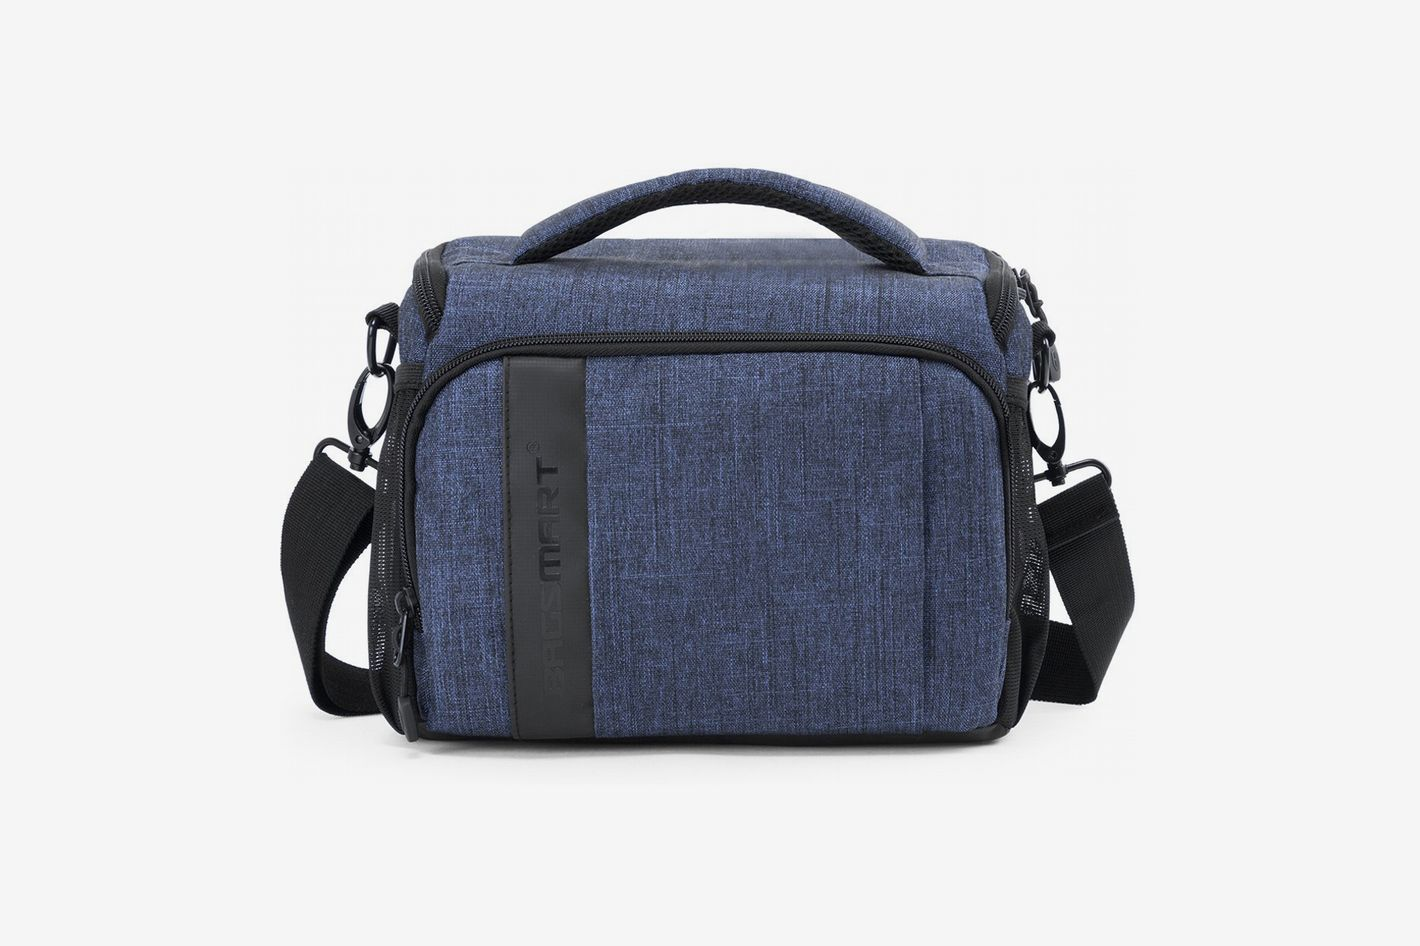 BAGSMART Compact Camera Bag for SLR/DSLR with Waterproof Rain Cover, Heather Blue